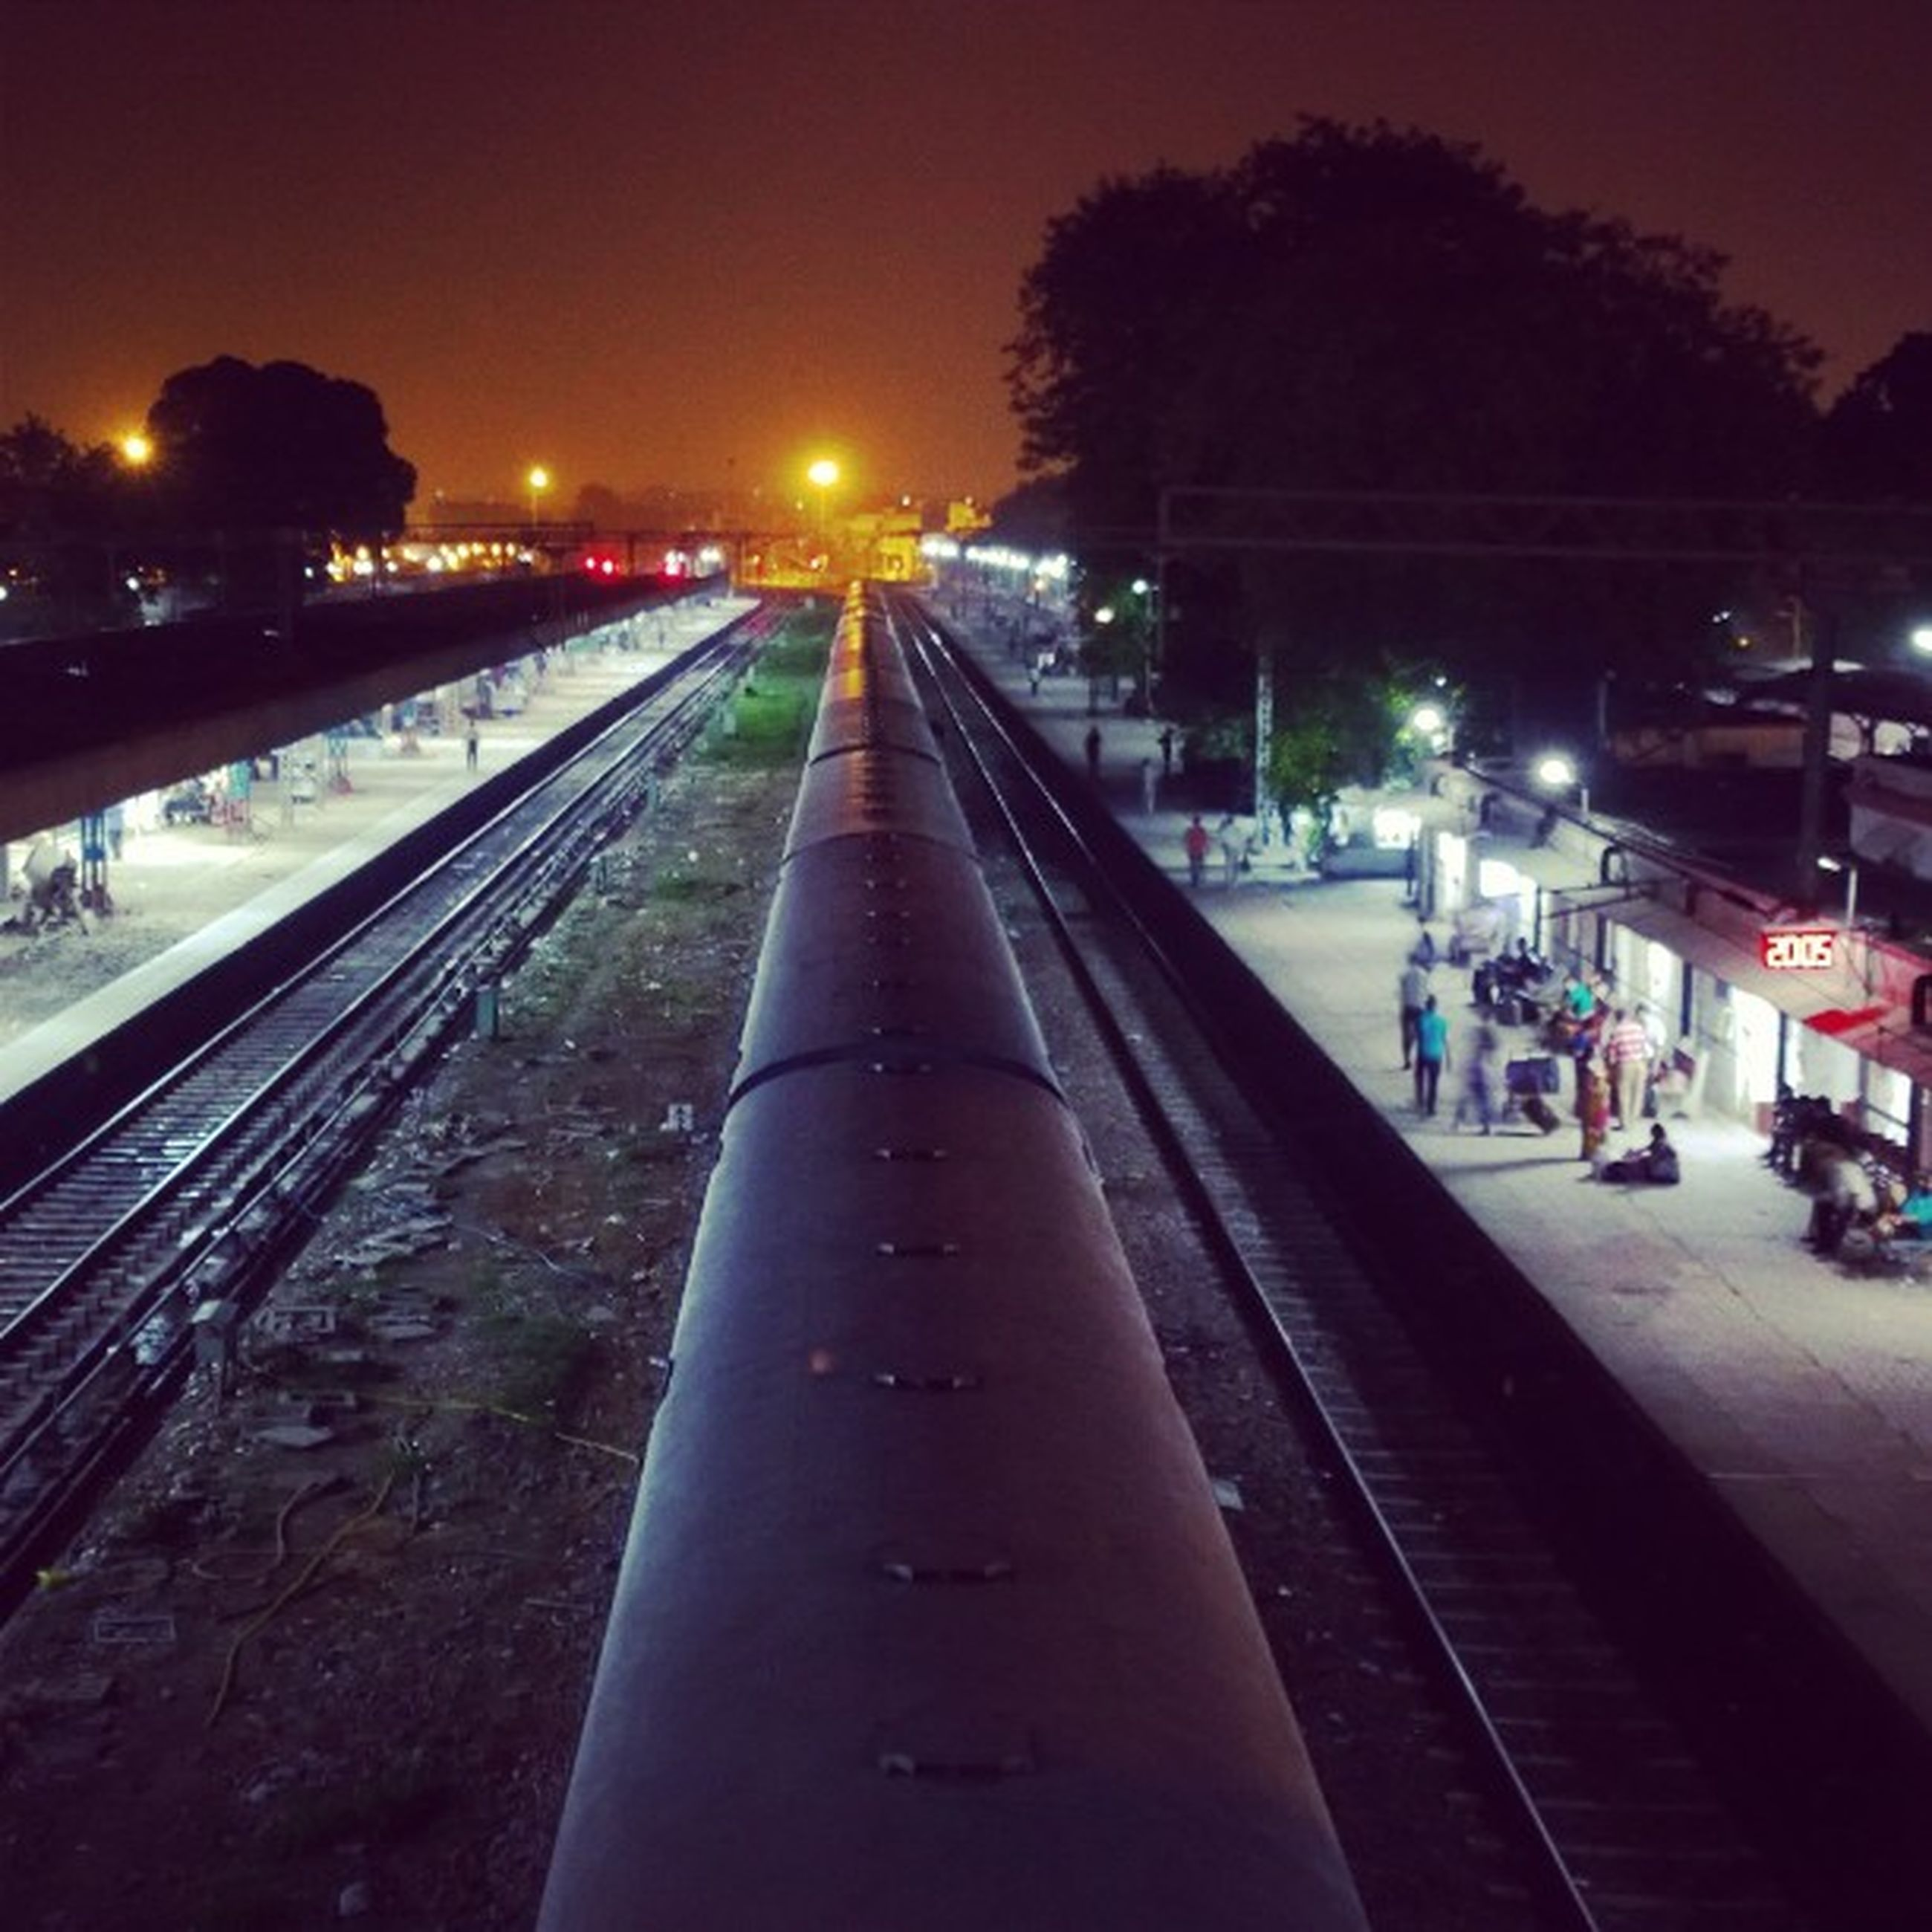 illuminated, transportation, night, railroad track, street light, the way forward, diminishing perspective, city, railroad station platform, public transportation, lighting equipment, rail transportation, vanishing point, railroad station, mode of transport, building exterior, high angle view, road, built structure, travel